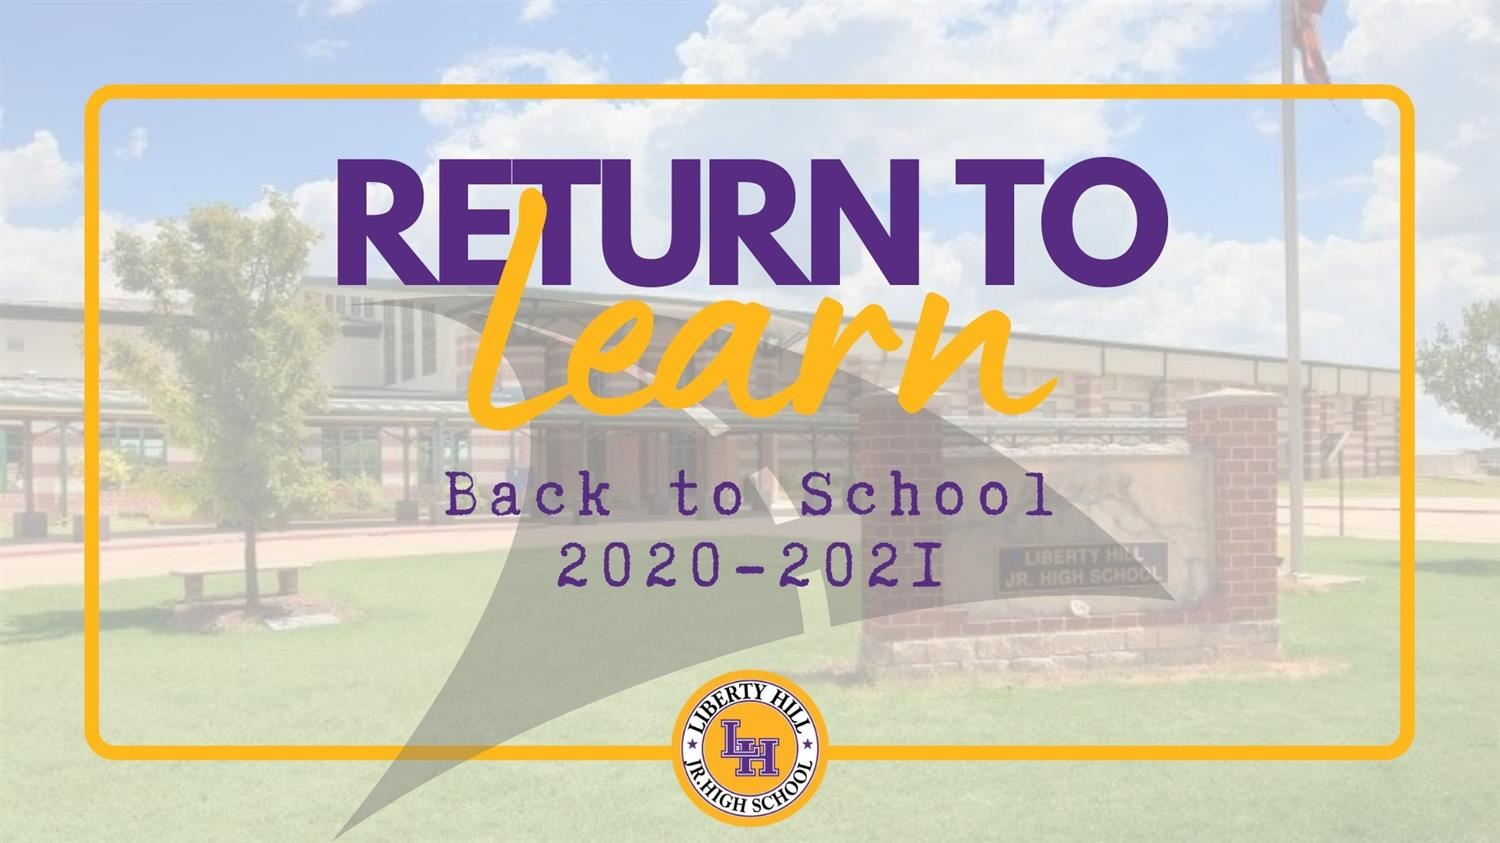 Return to Learn text logo